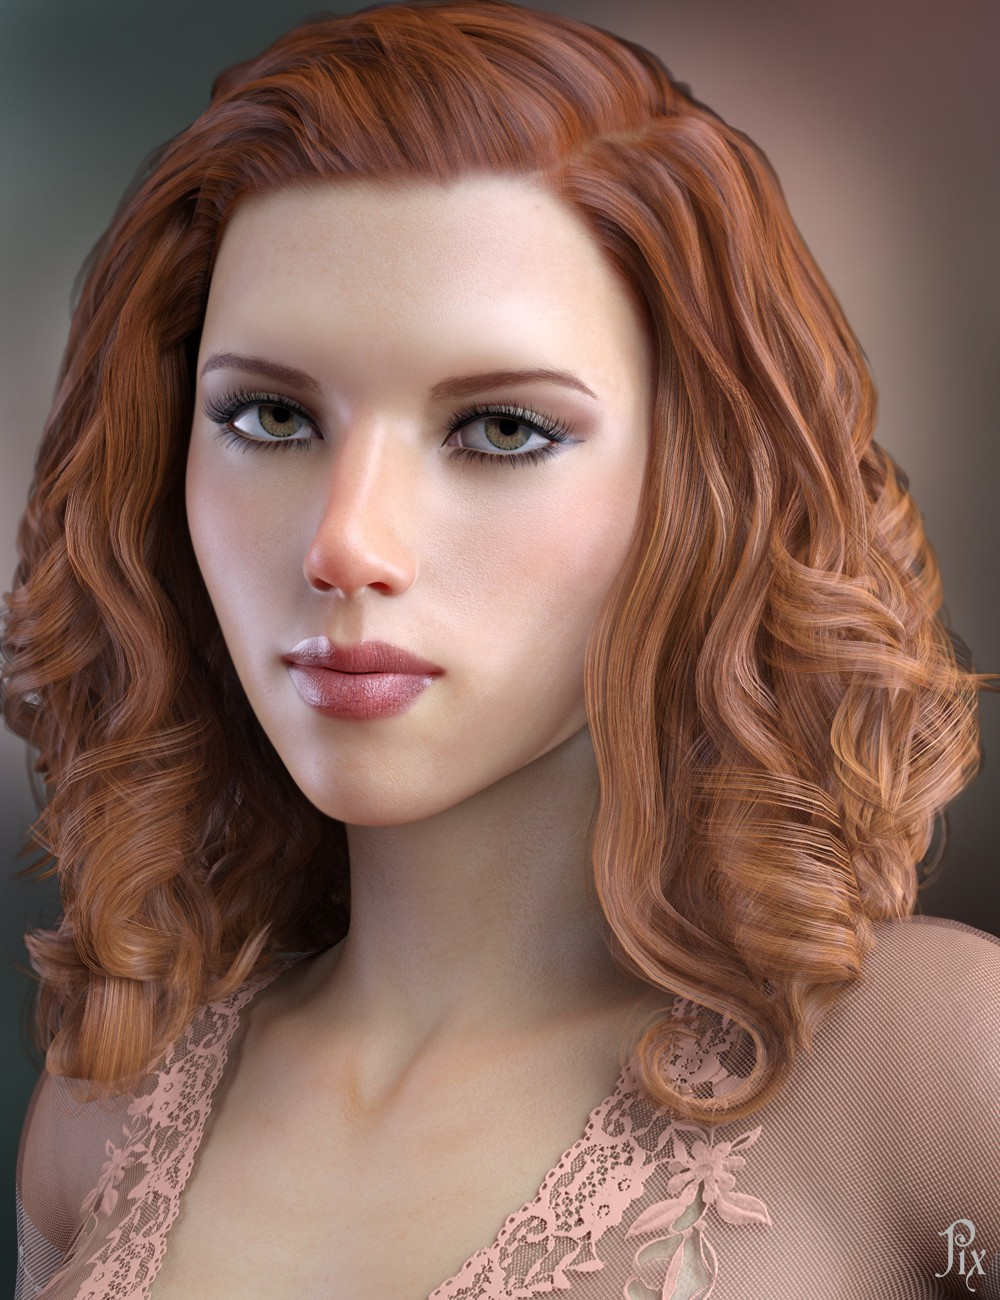 Scarlett Johansson for Genesis 8 Female - Celebrity 3D Model